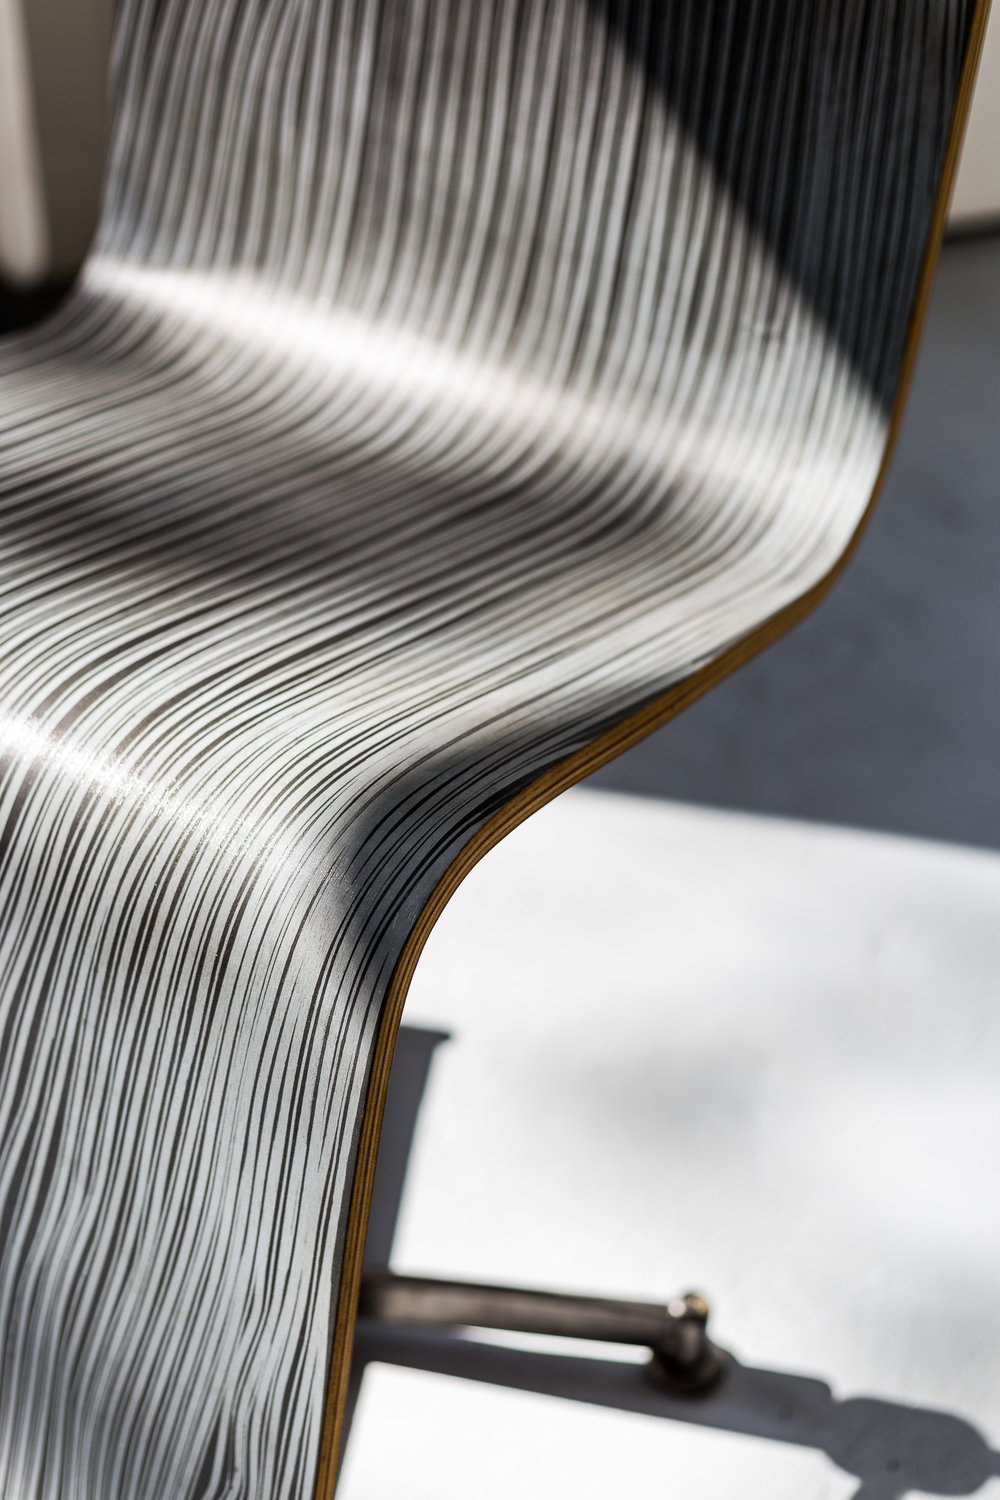 Fiona Banner,  Pinstripe Chair  (detail) ,  2015, graphite, vinyl, plywood, chair base, 148 x 52 x 50 cm  Photo: Kilian Bannwart